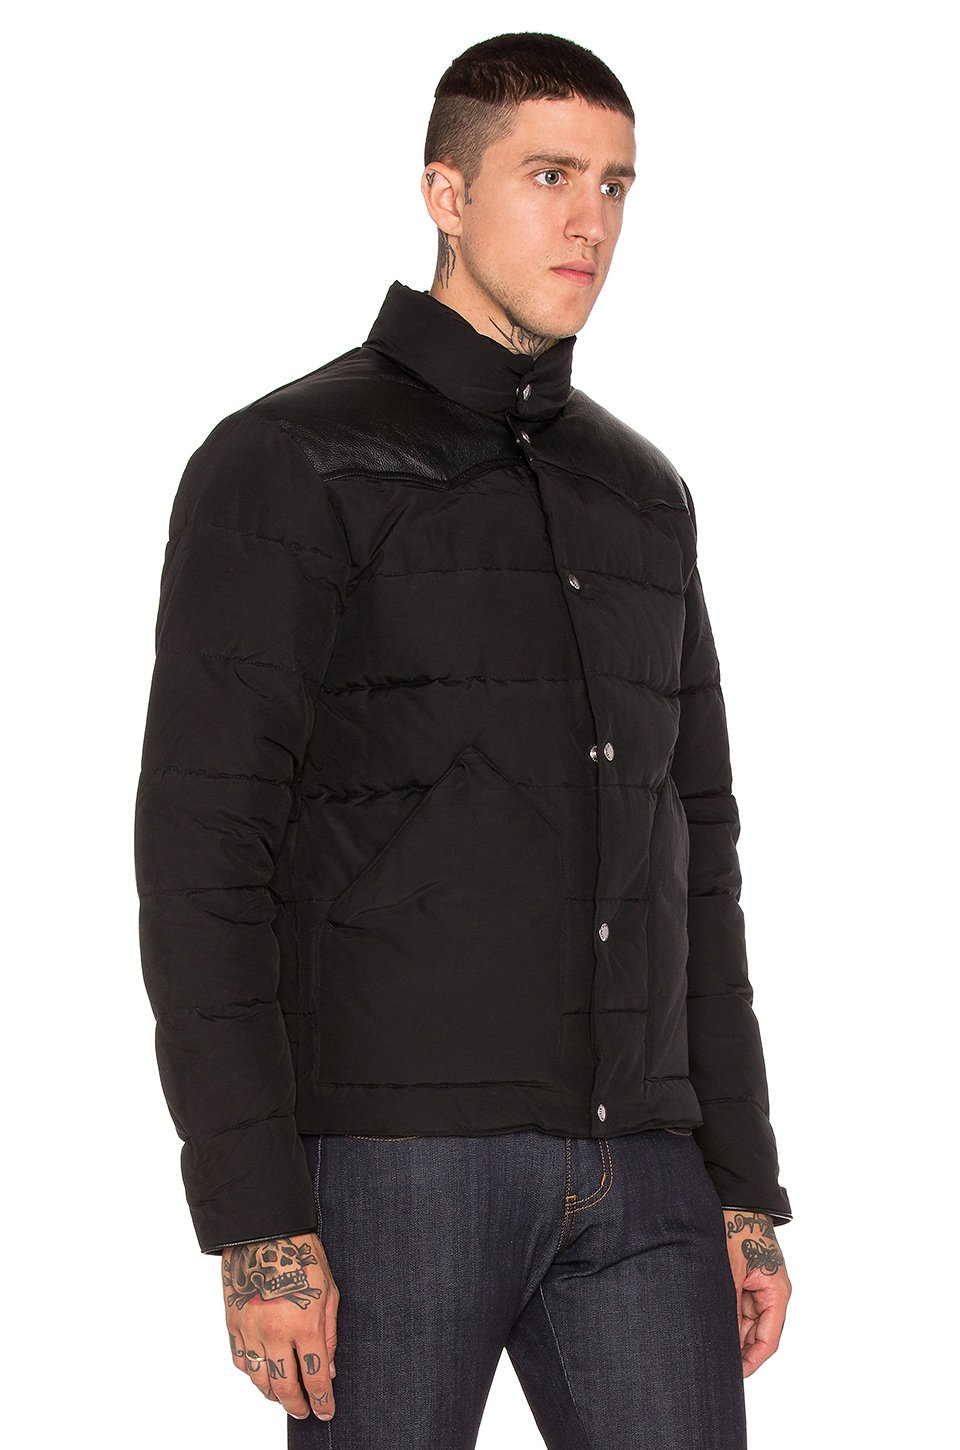 penfield black single men Spurr lightweight quilted jacket in black  hoosac iconic hooded down  mountain parka in black  caputo short sleeve graphic t-shirt in black.